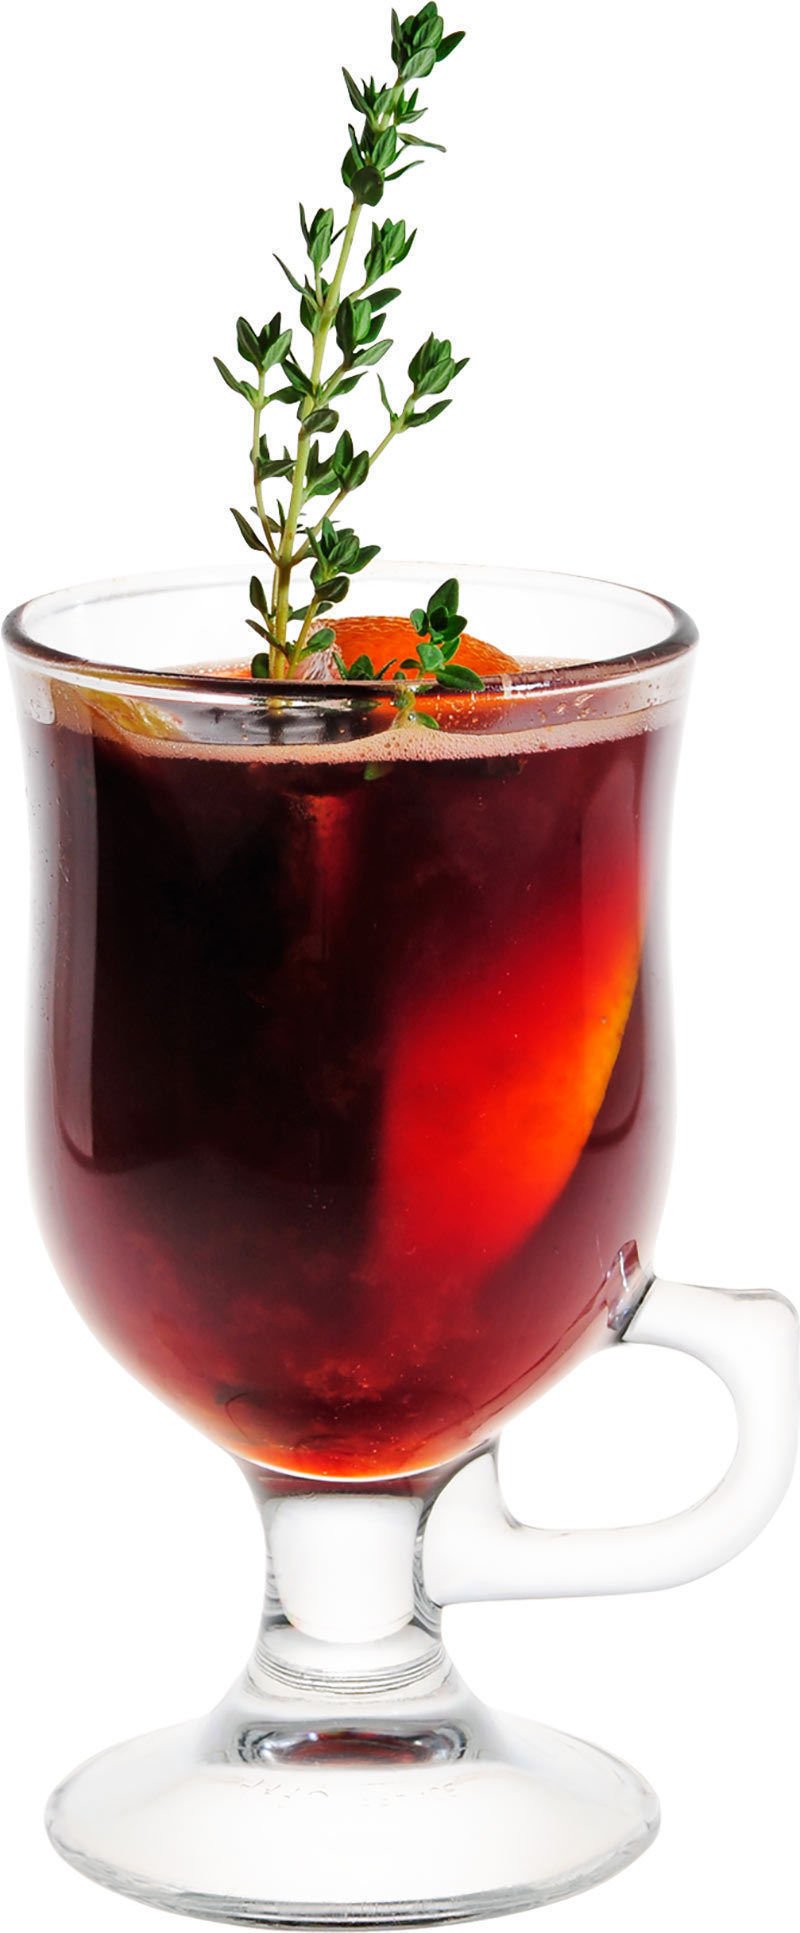 How to Make the Sea Buckthorn Mulled Wine